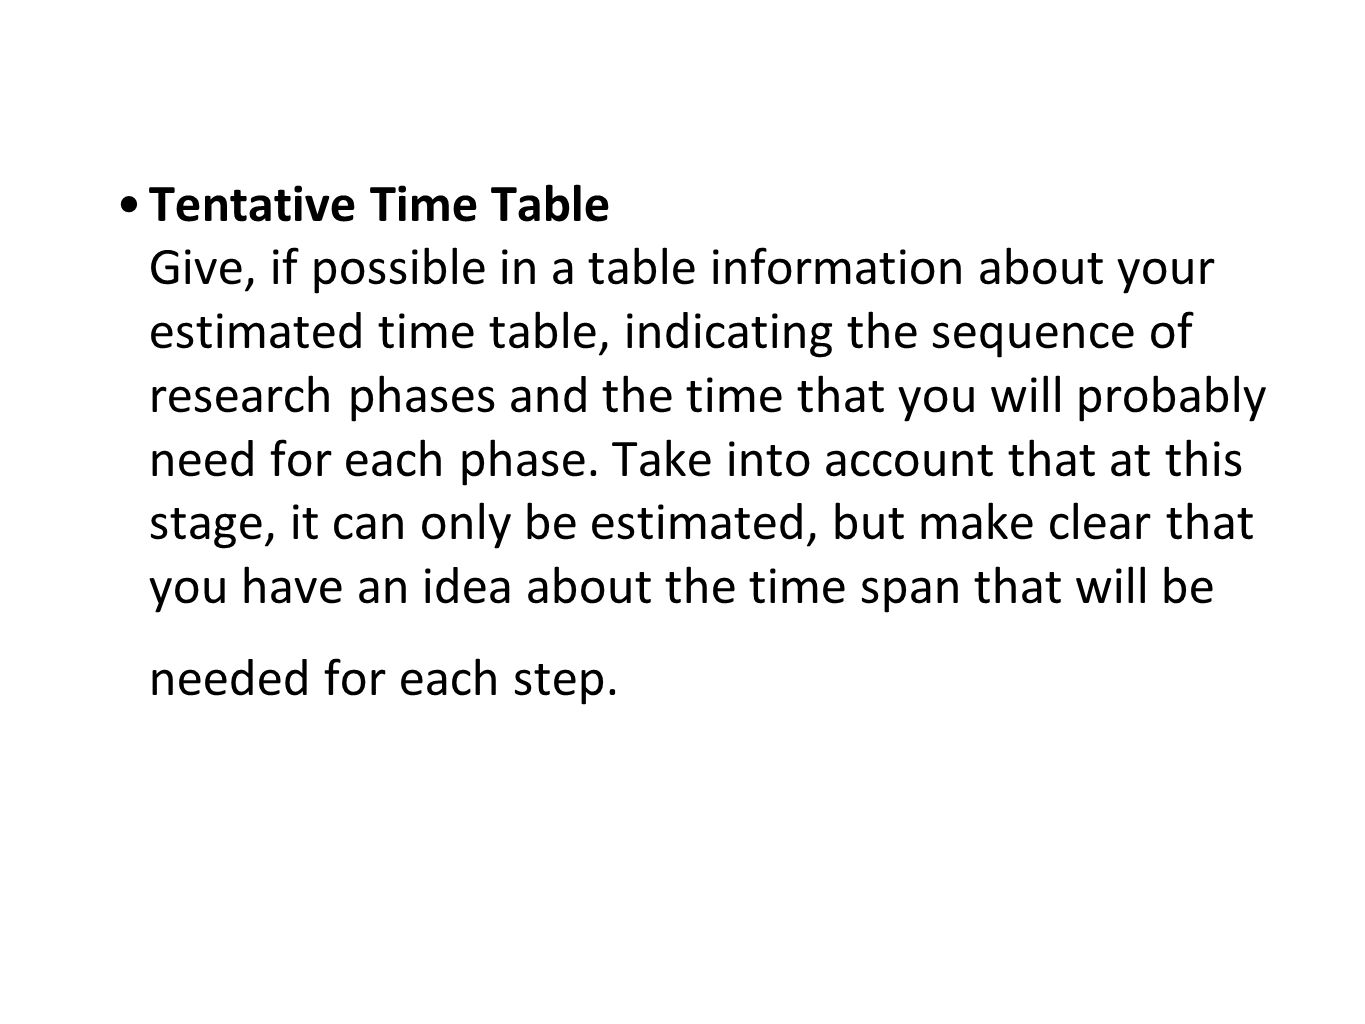 Tentative Time Table Give, if possible in a table information about your estimated time table, indicating the sequence of research phases and the time that you will probably need for each phase.